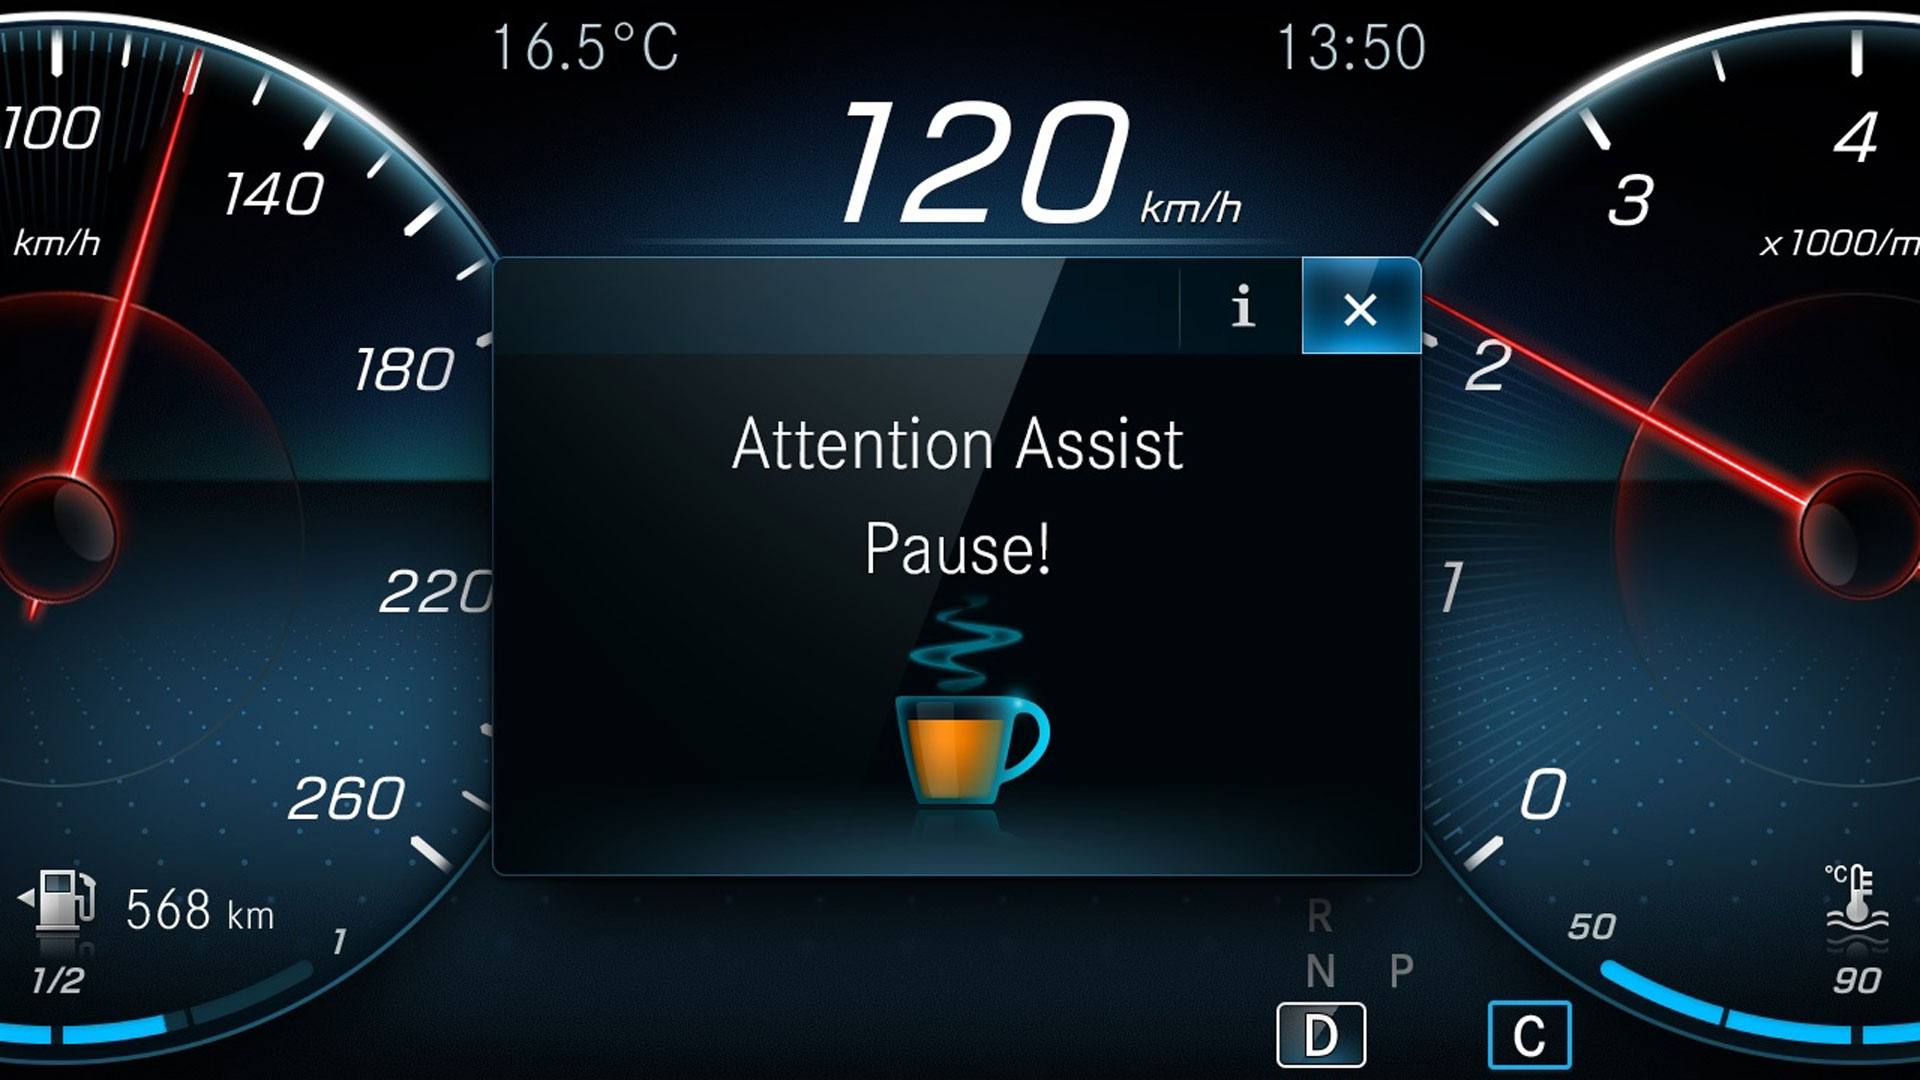 Mercedes Attention Assist